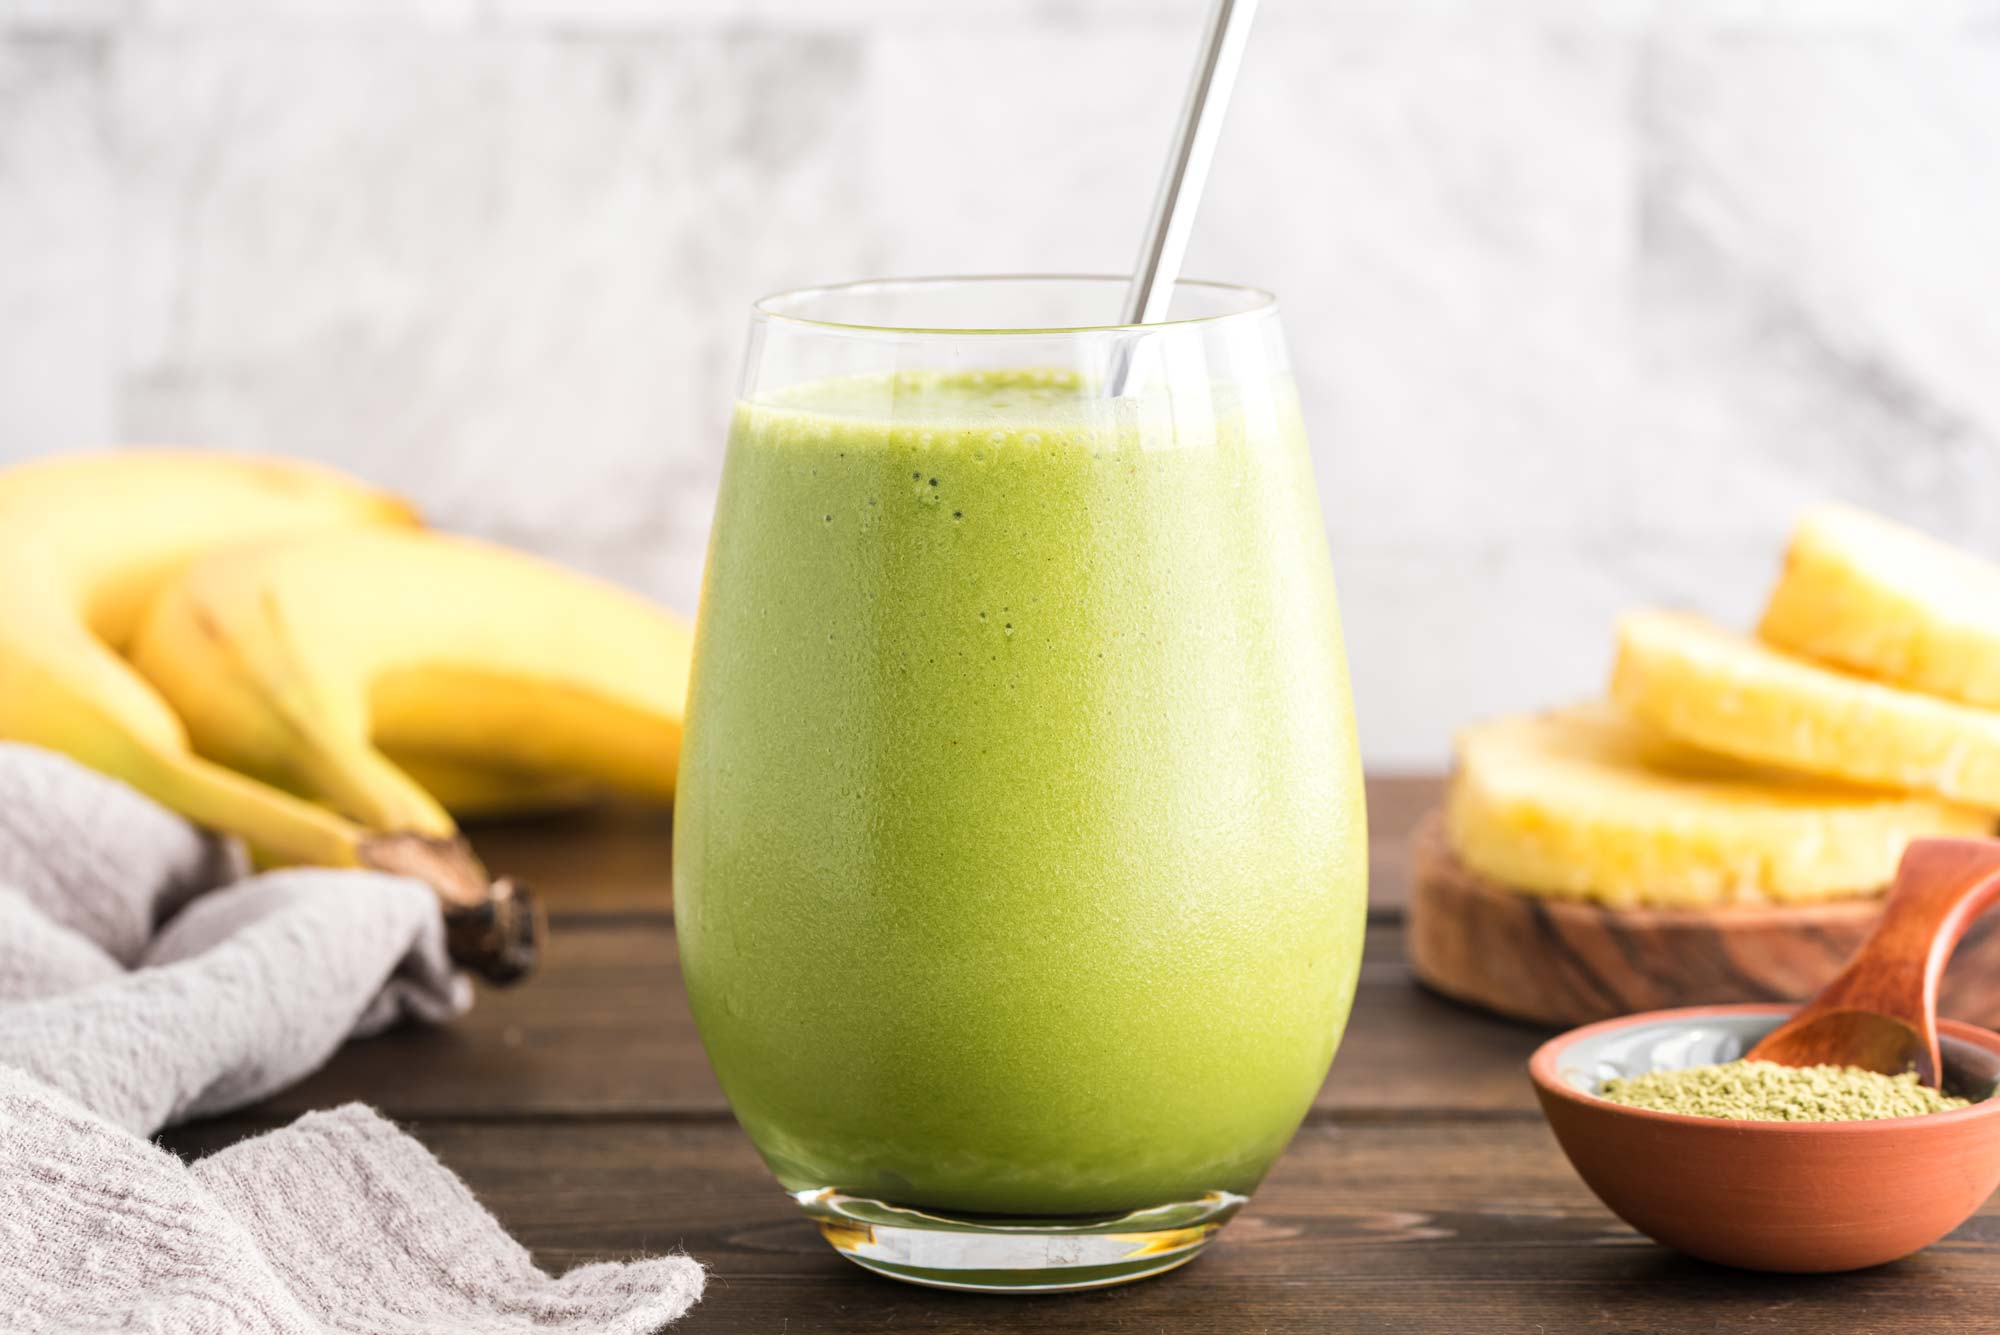 pineapple match rise-n-shine smoothie in glass